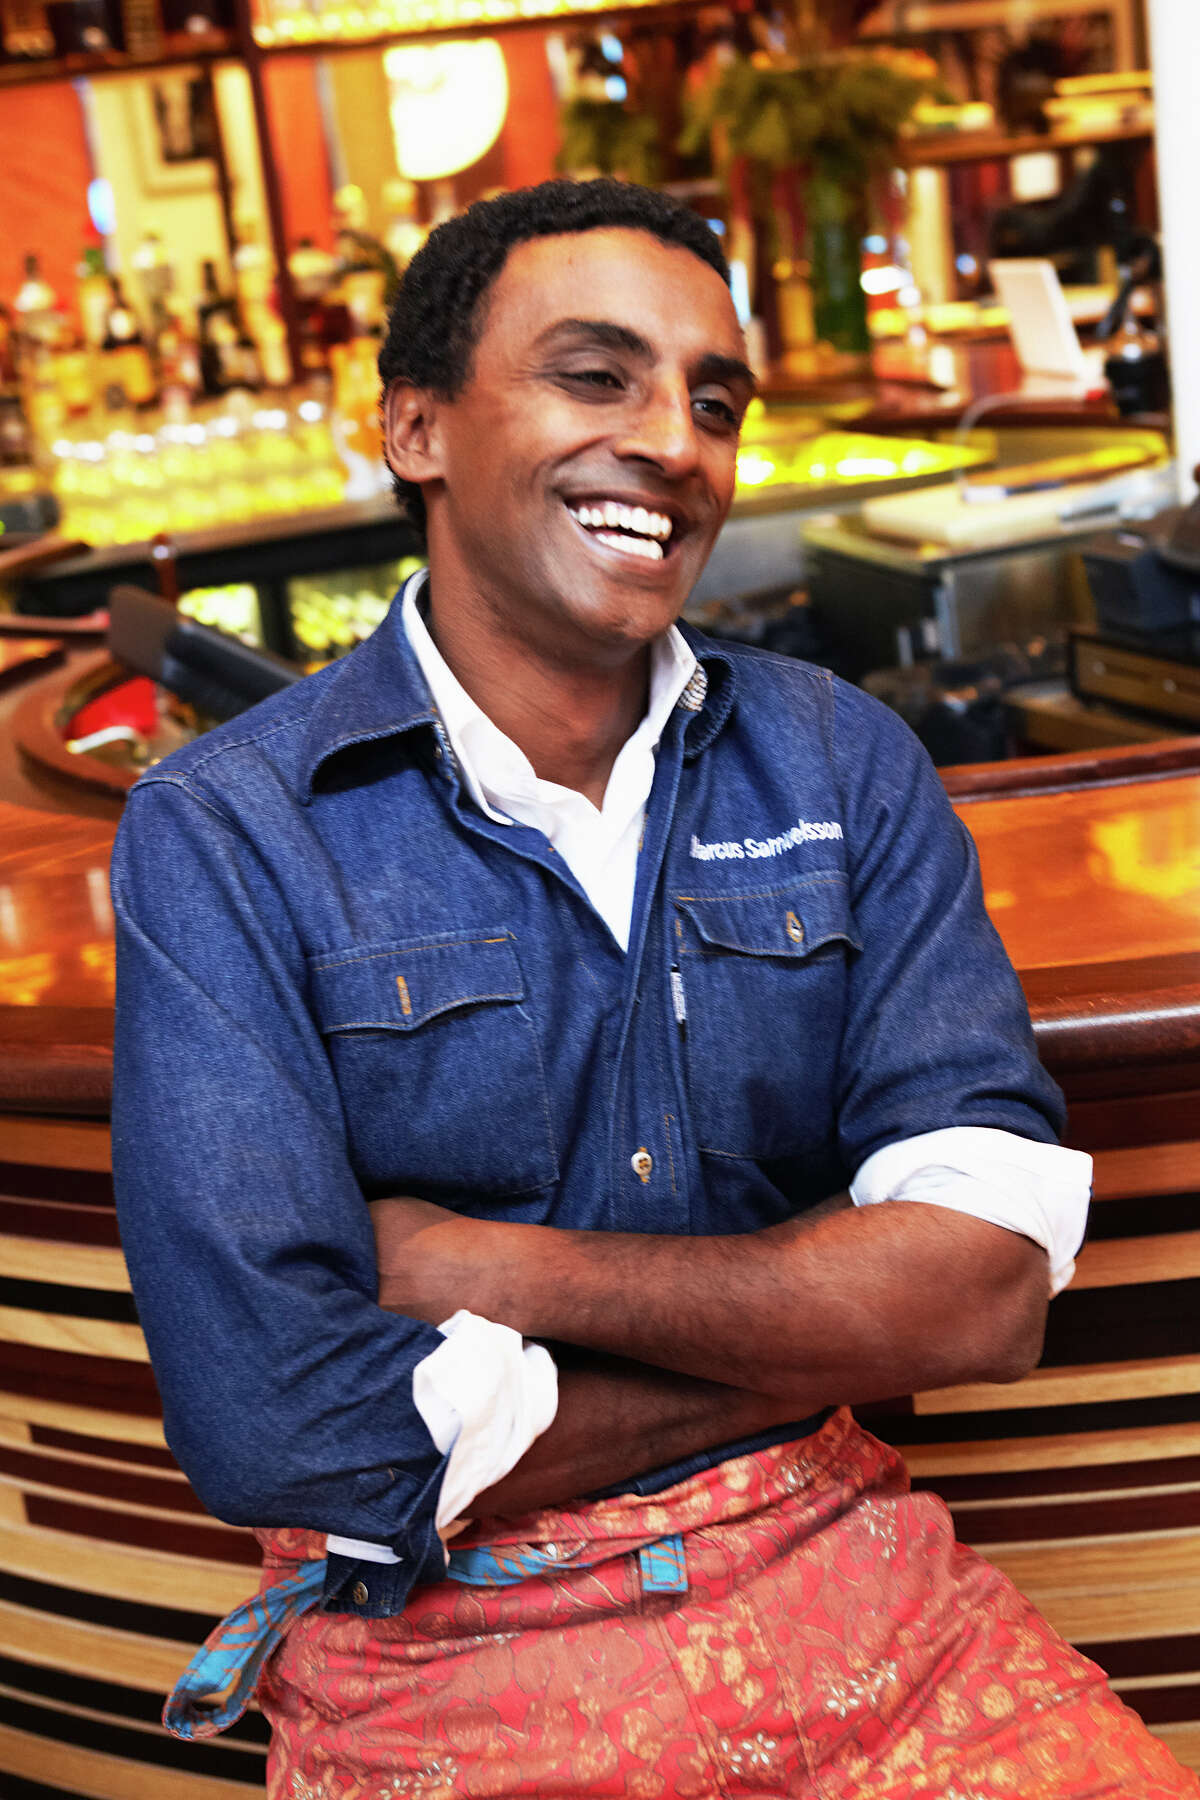 Chef Marcus Samuelsson will sign his new book in Houston on Thursday.